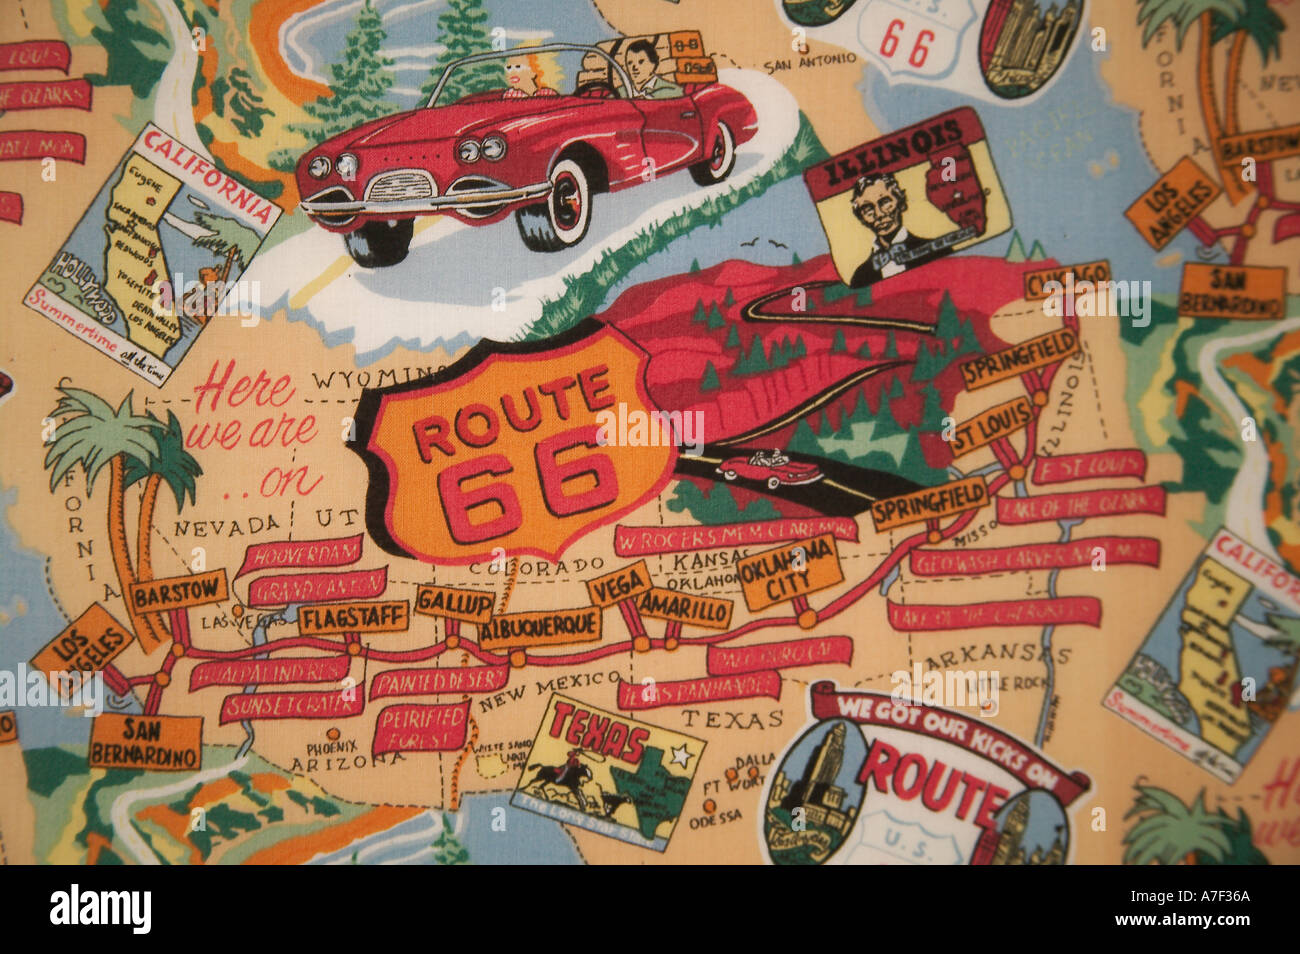 Fabric Map Of Route  At Route  Museum Clinton Oklahoma Stock - Chicago map route 66